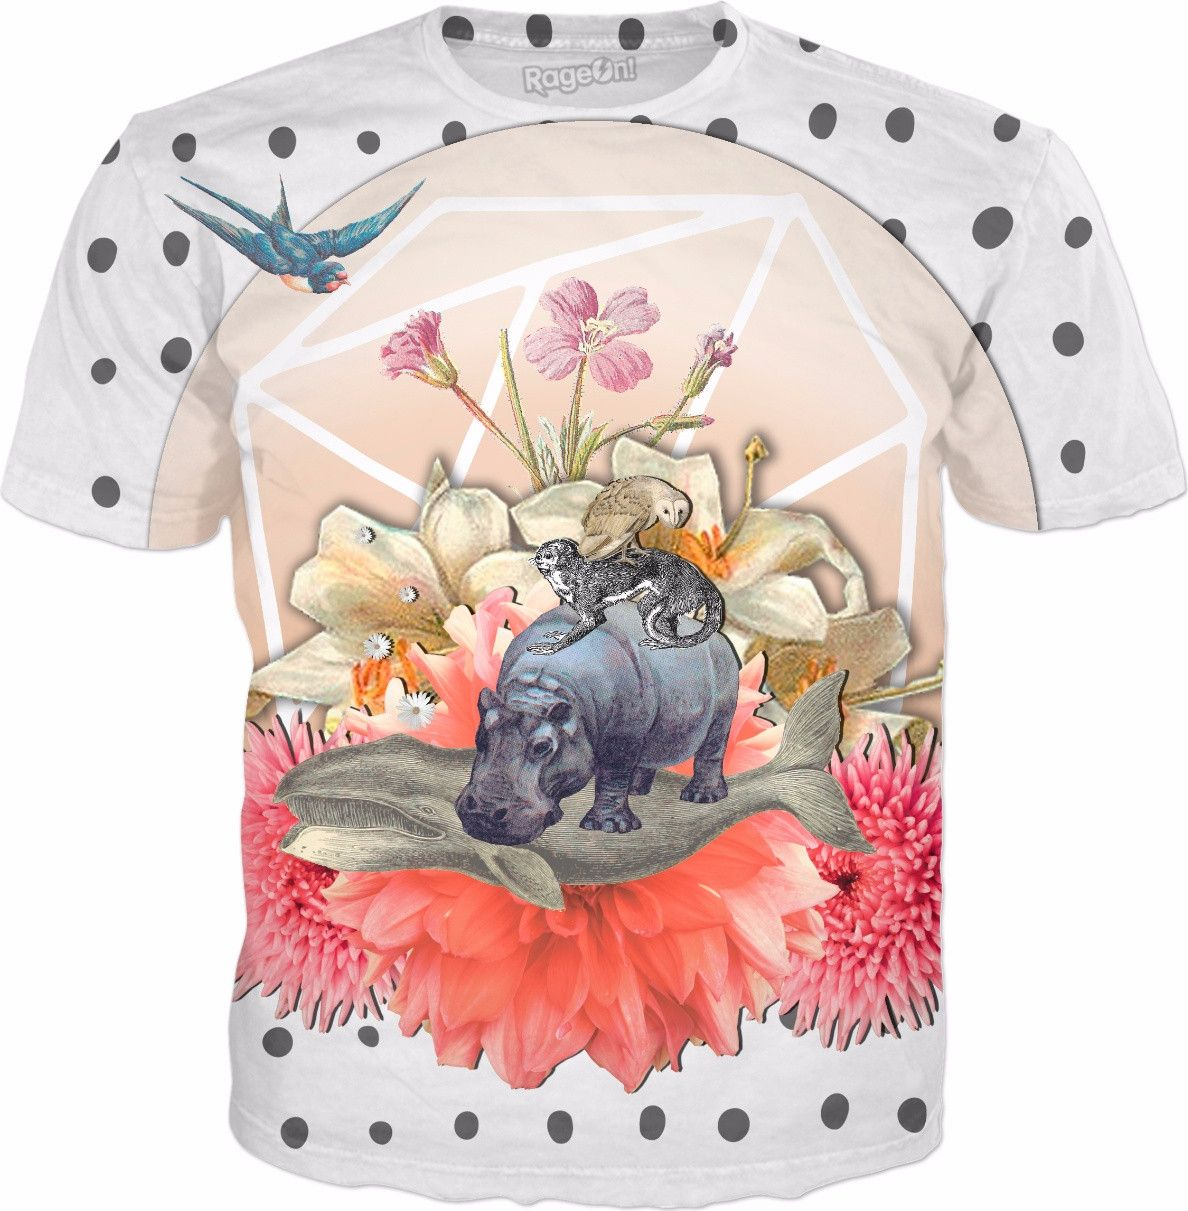 Check out my new product https://www.rageon.com/products/animal-pyramid?aff=BPAl on RageOn!